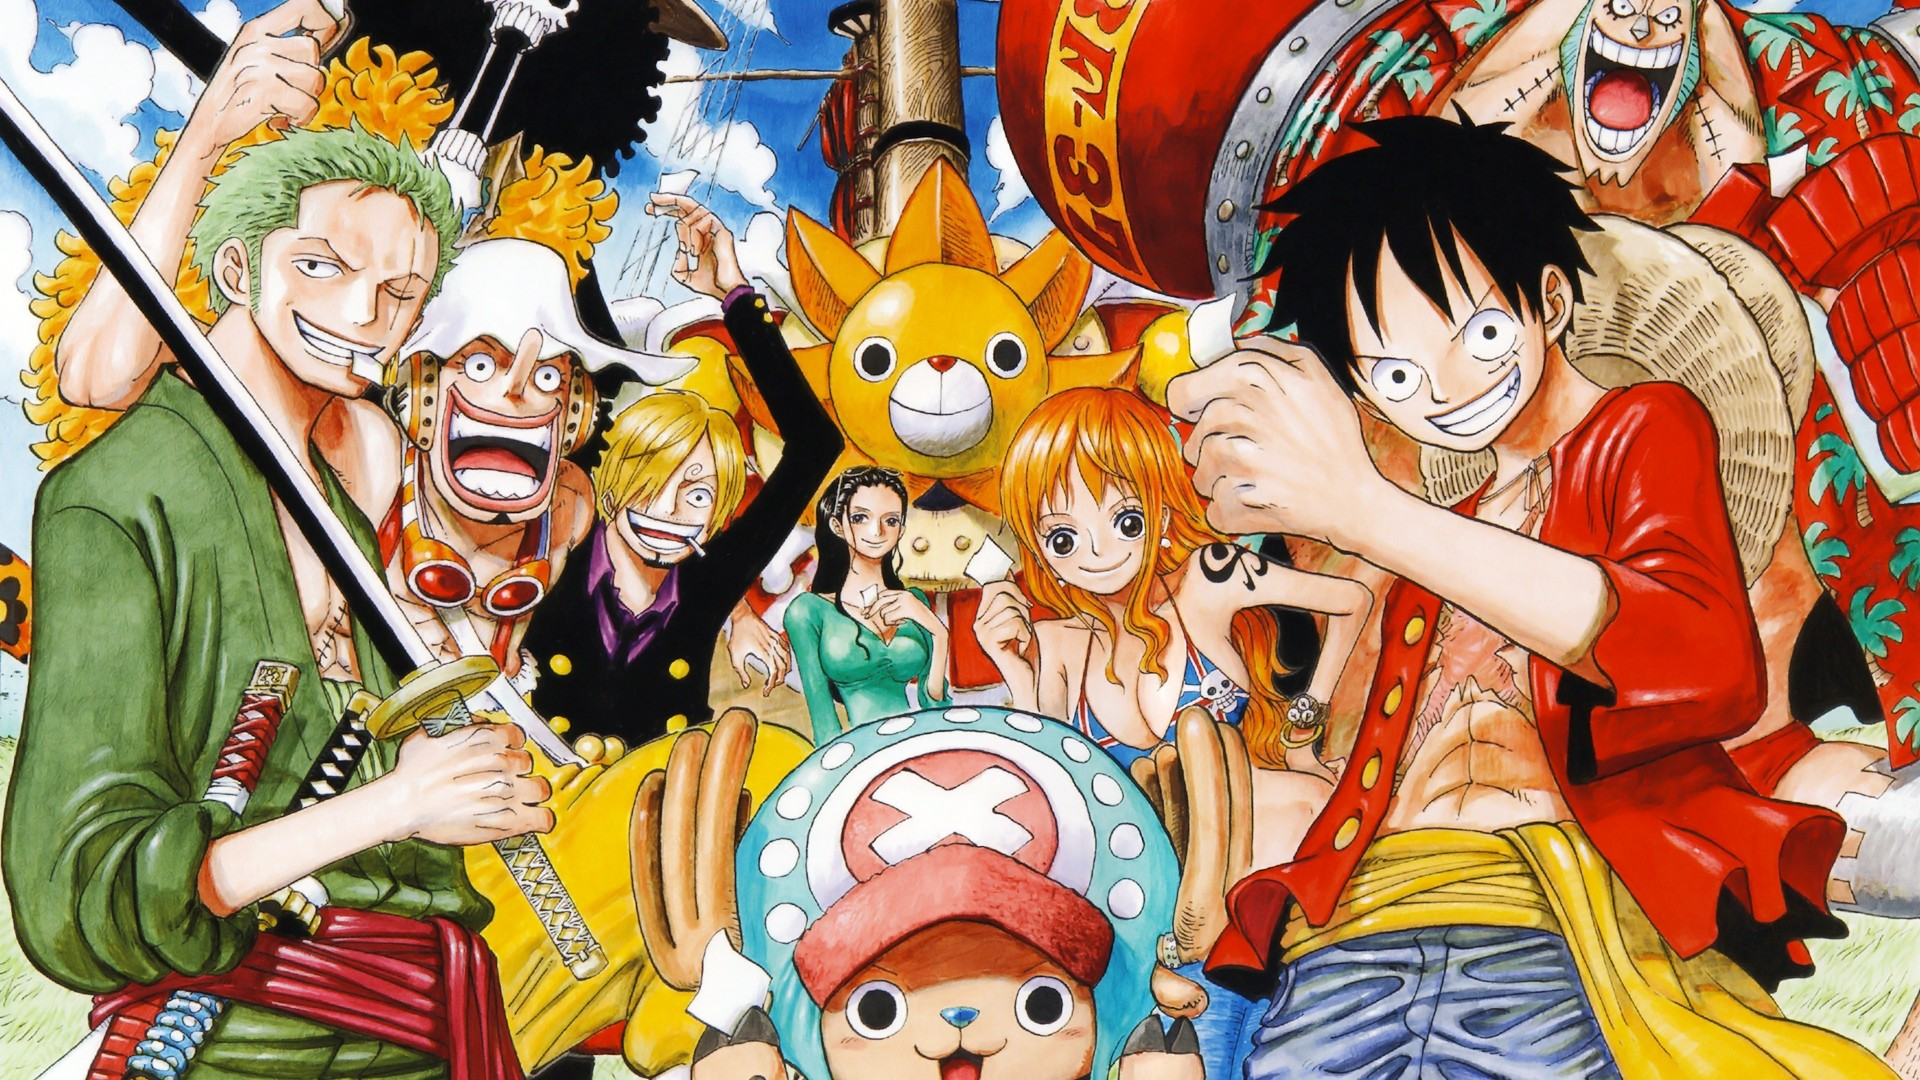 1920x1080 One Piece Mugiwaras HD Wallpaper | Background Image |  | ID:883613  - Wallpaper Abyss